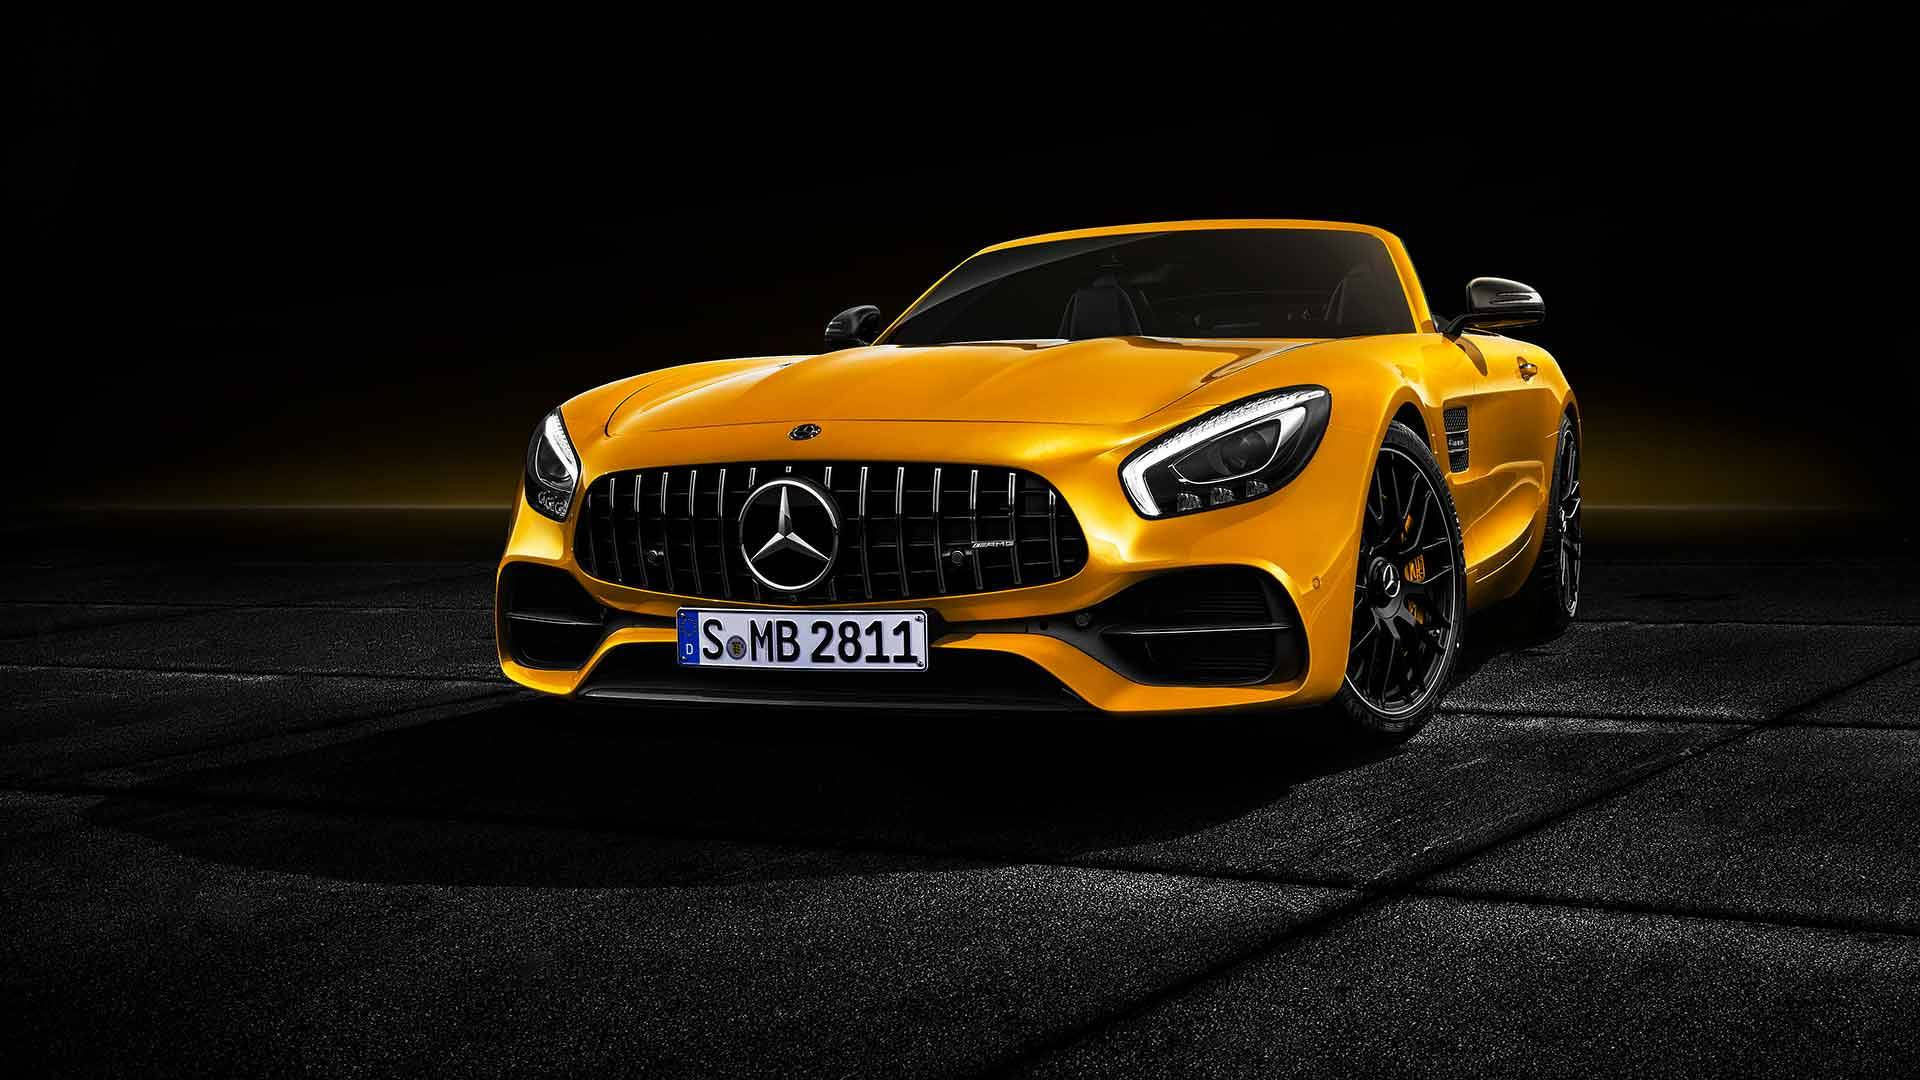 Mercedes-AMG has revealed a new drop-top roadster model, the GT S Roadster, that will go on sale in July 2018 with a potent 4.0-liter V8 engine on board